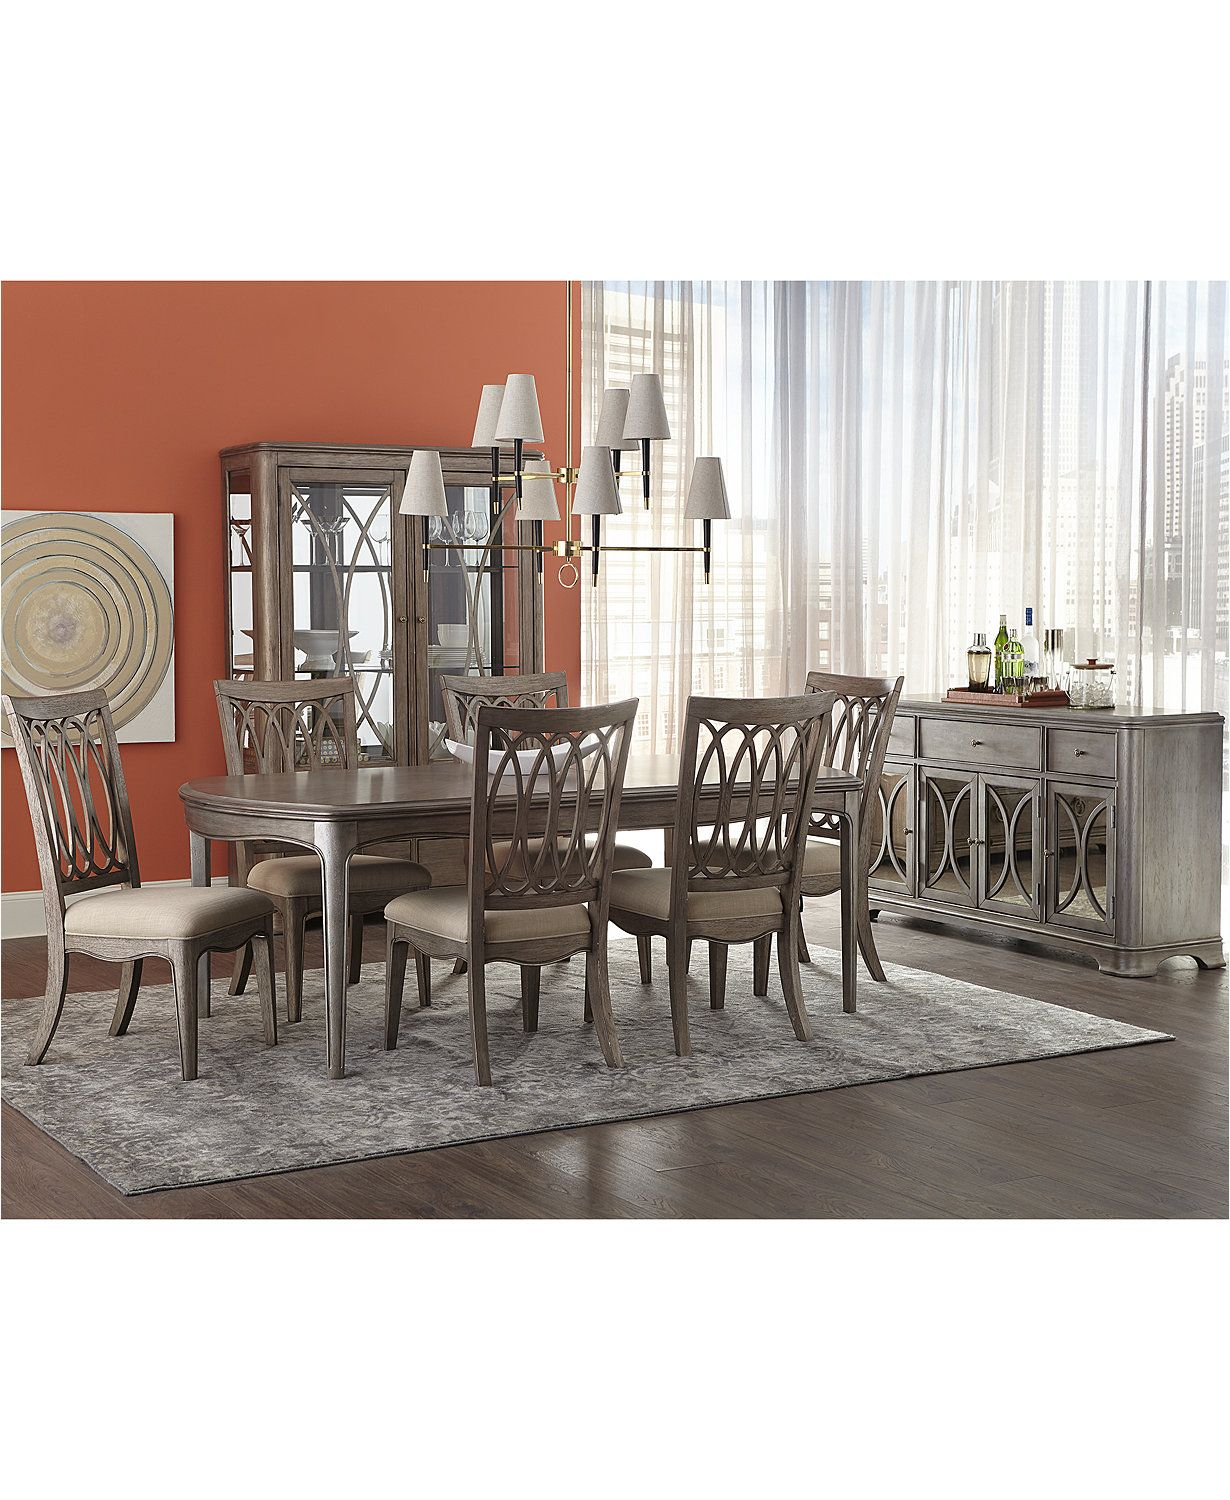 Hayley Dining Room Set Signature Design By Ashley, 1 ...